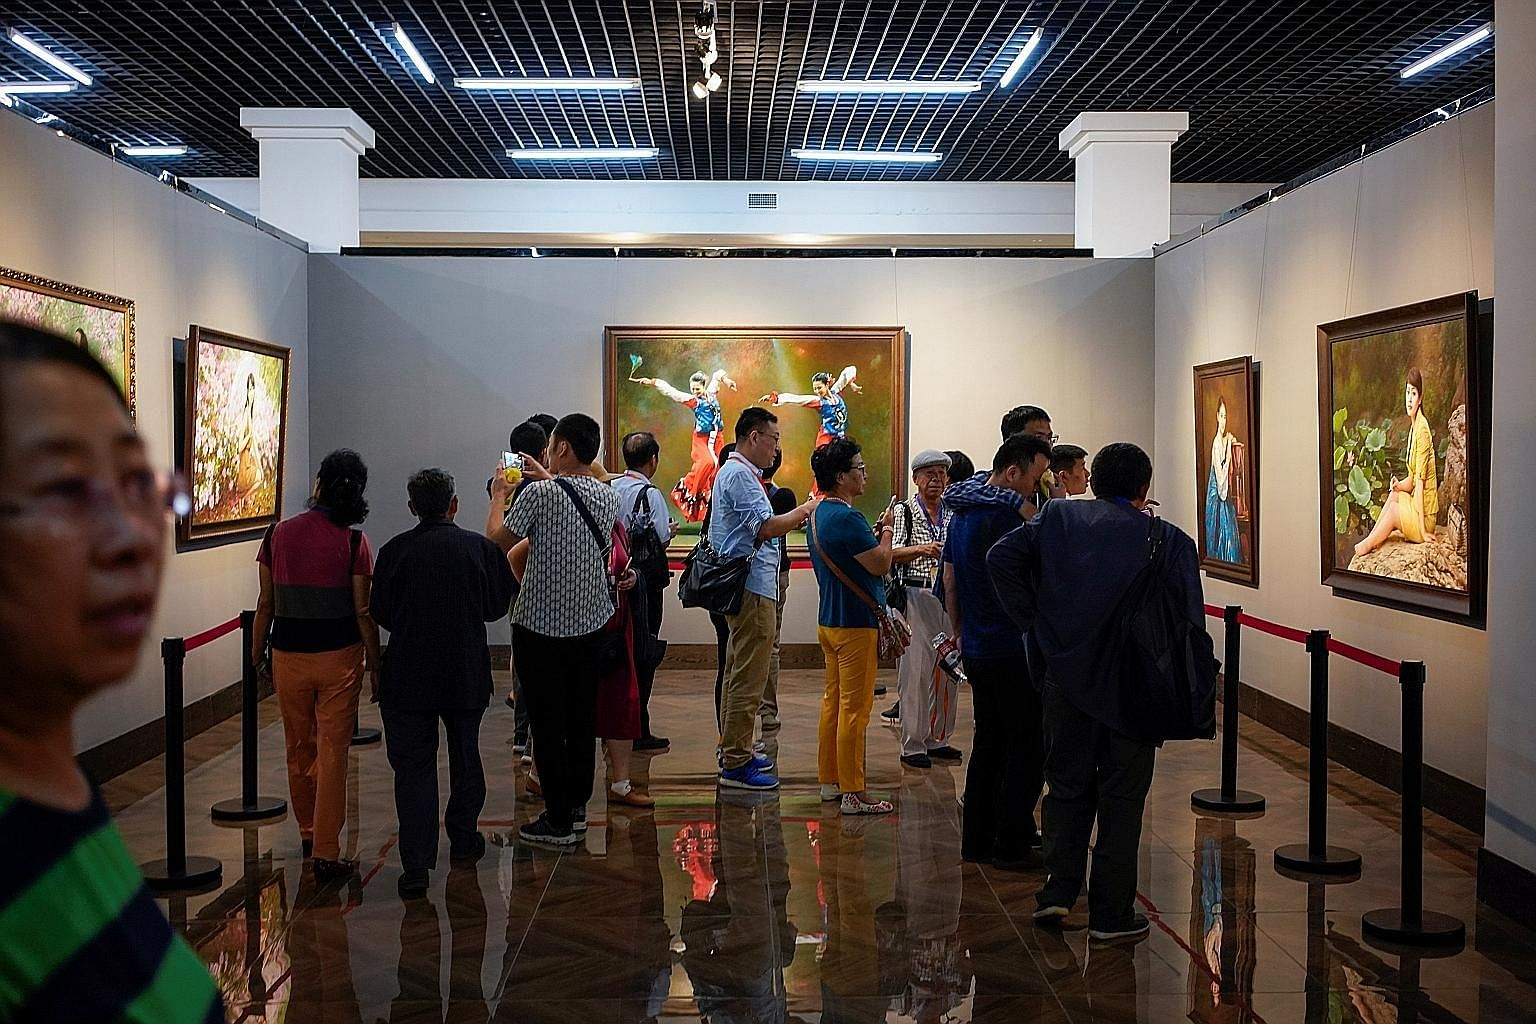 A gallery of paintings by North Korean artists at the China-North Korea Cultural Centre in Dandong, Liaoning province, China. Many galleries in the Chinese border city house North Korean painters, and their works are said to have sold for as much as